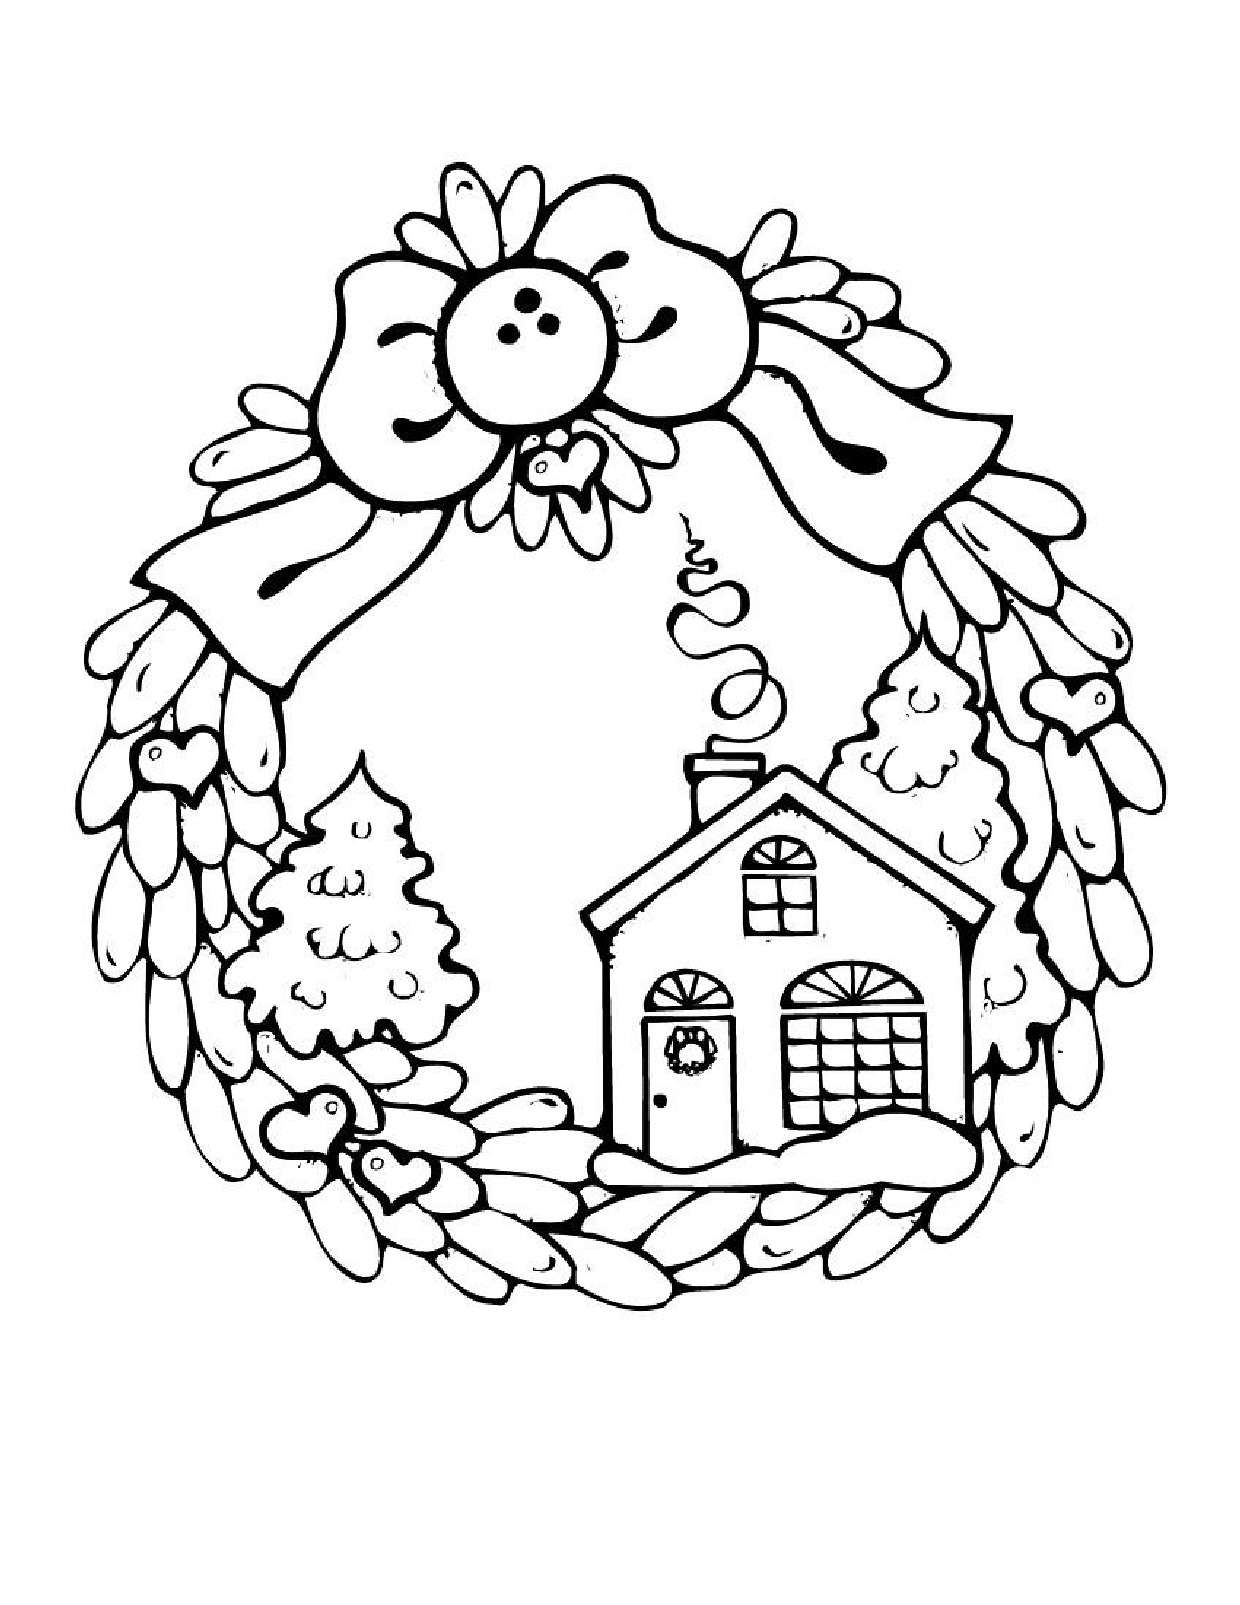 Winter Holiday Coloring Pages At Getdrawings Com Free For Personal